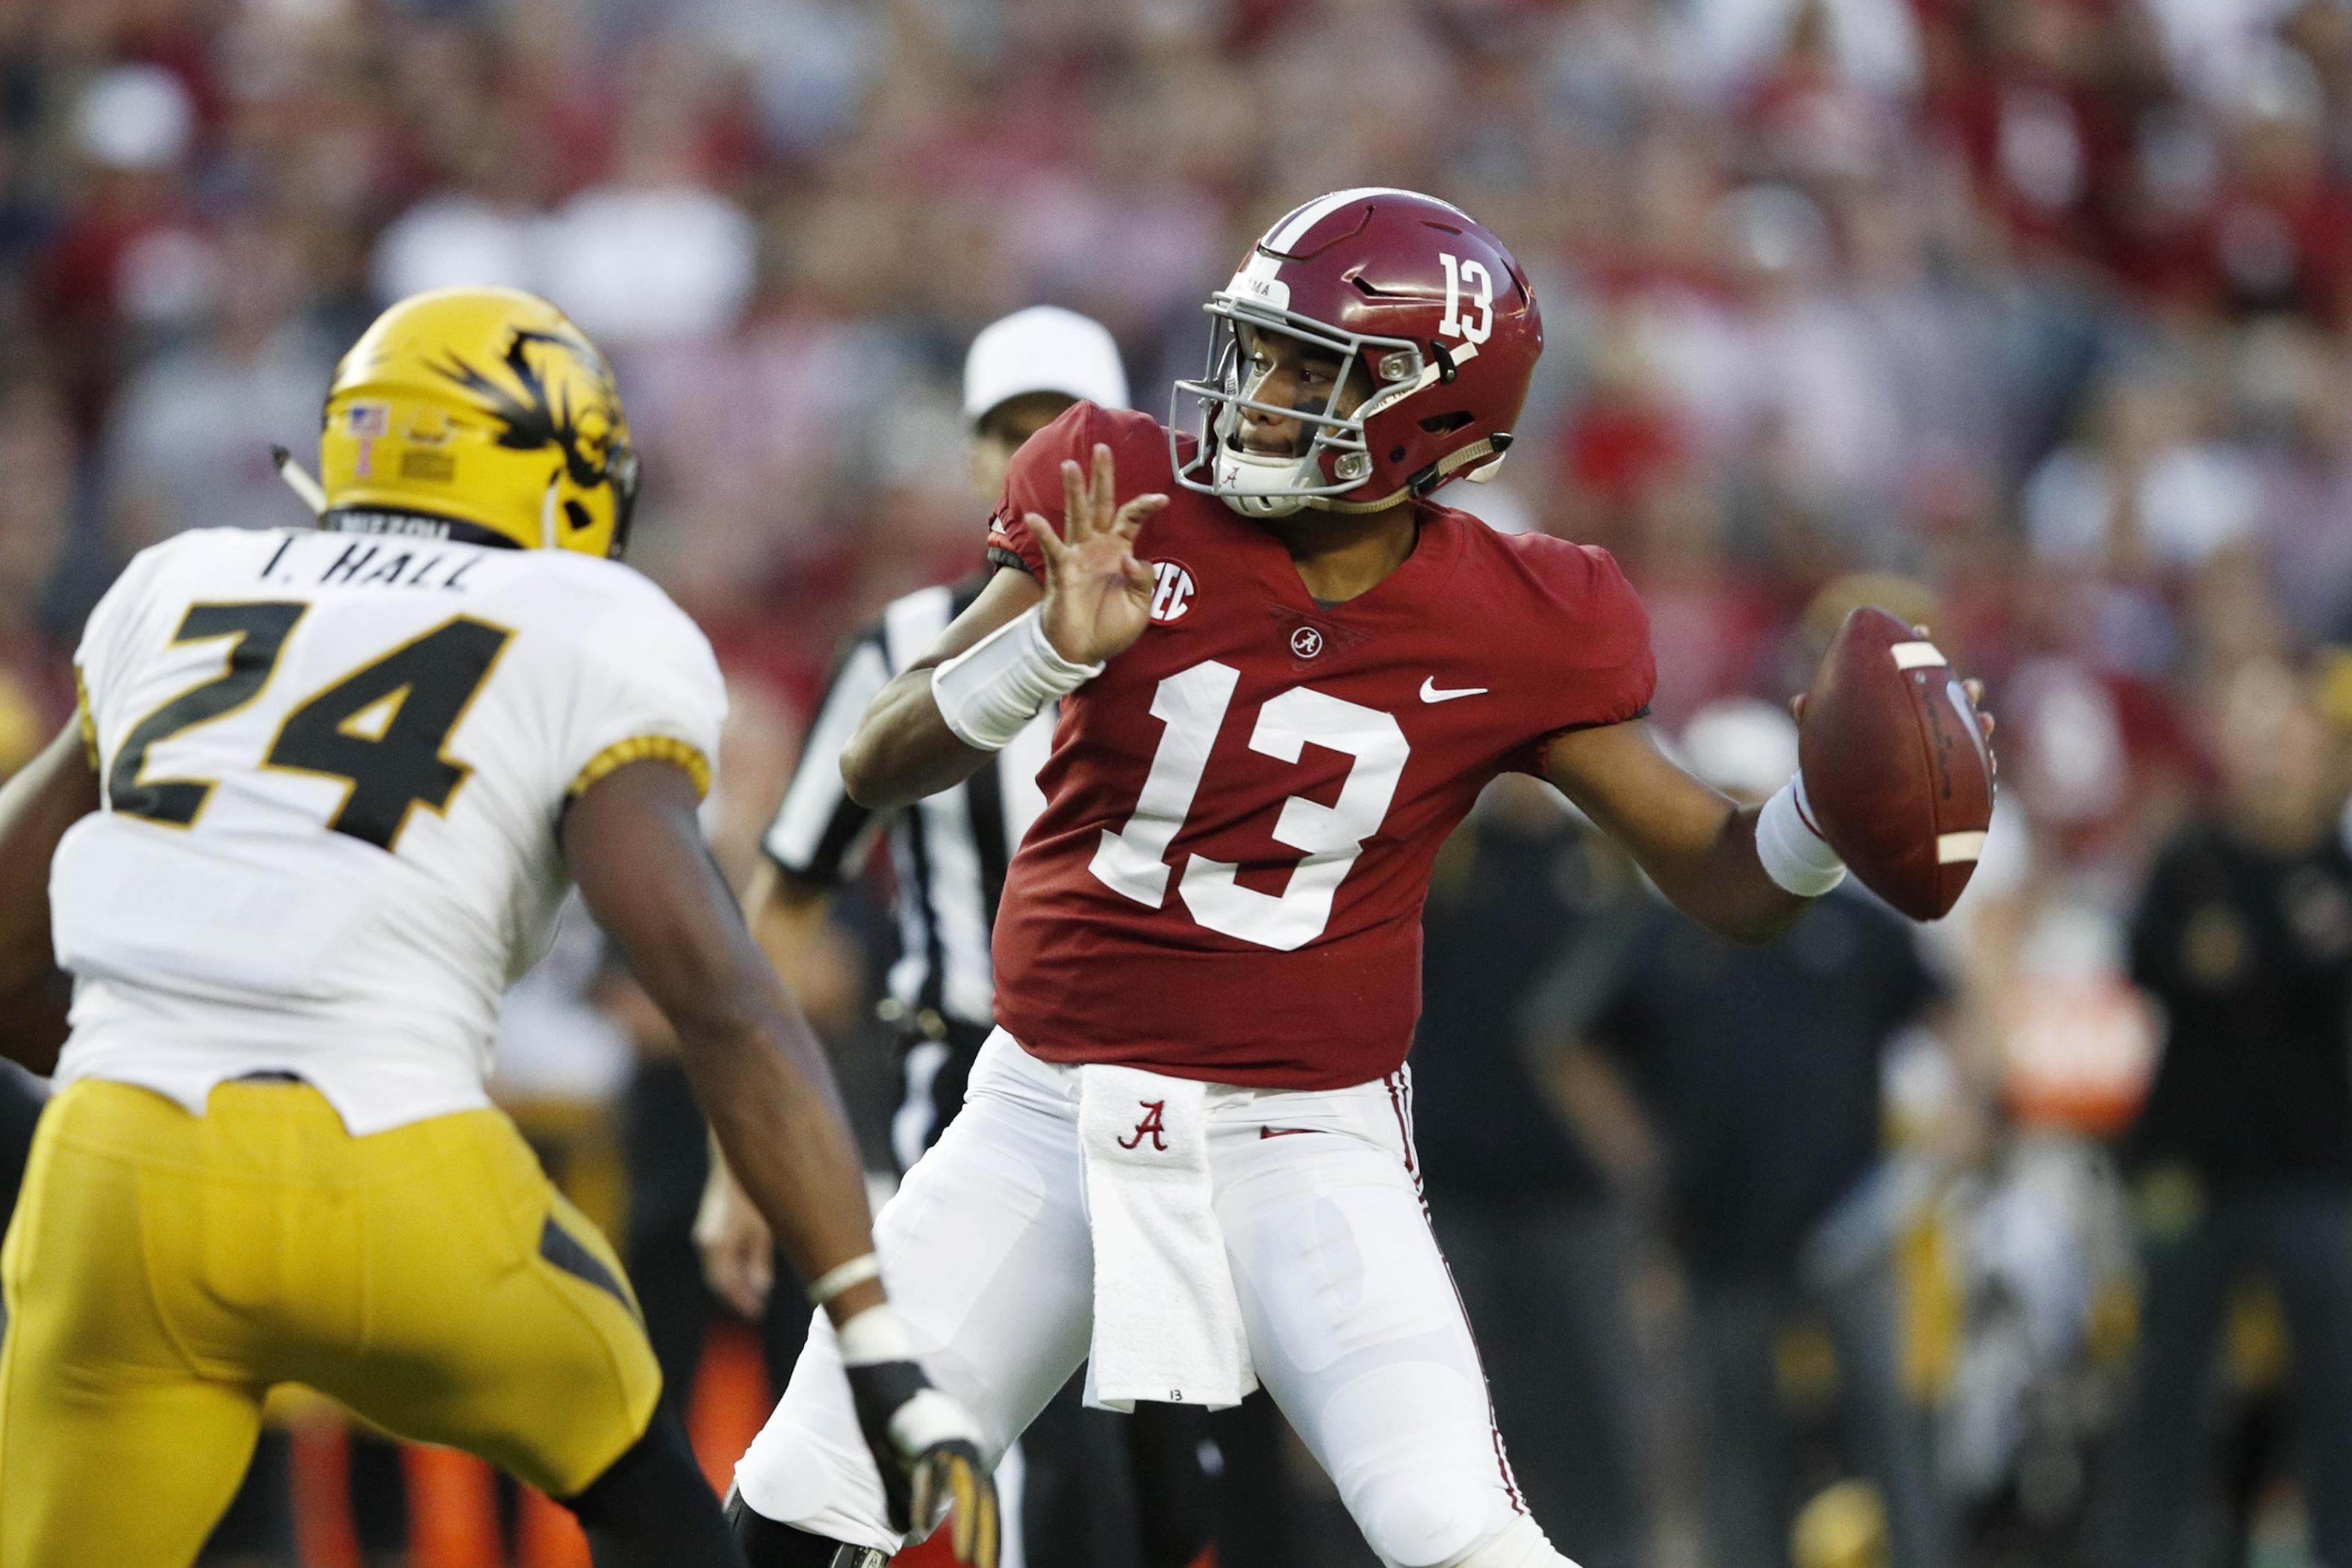 The 4 players with the best chance at the 2019 Heisman right